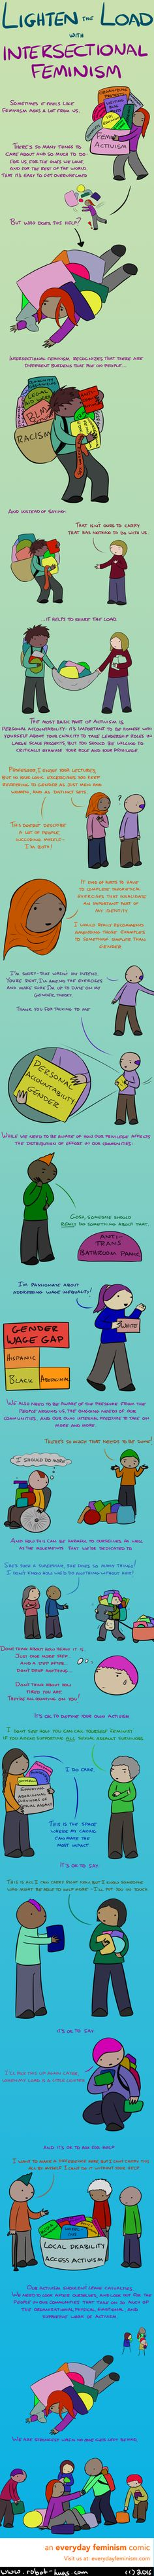 Carrying Feminism I LOVE THIS ♥ The idea of sharing the load reminds me a lot of Audre Lorde. :)